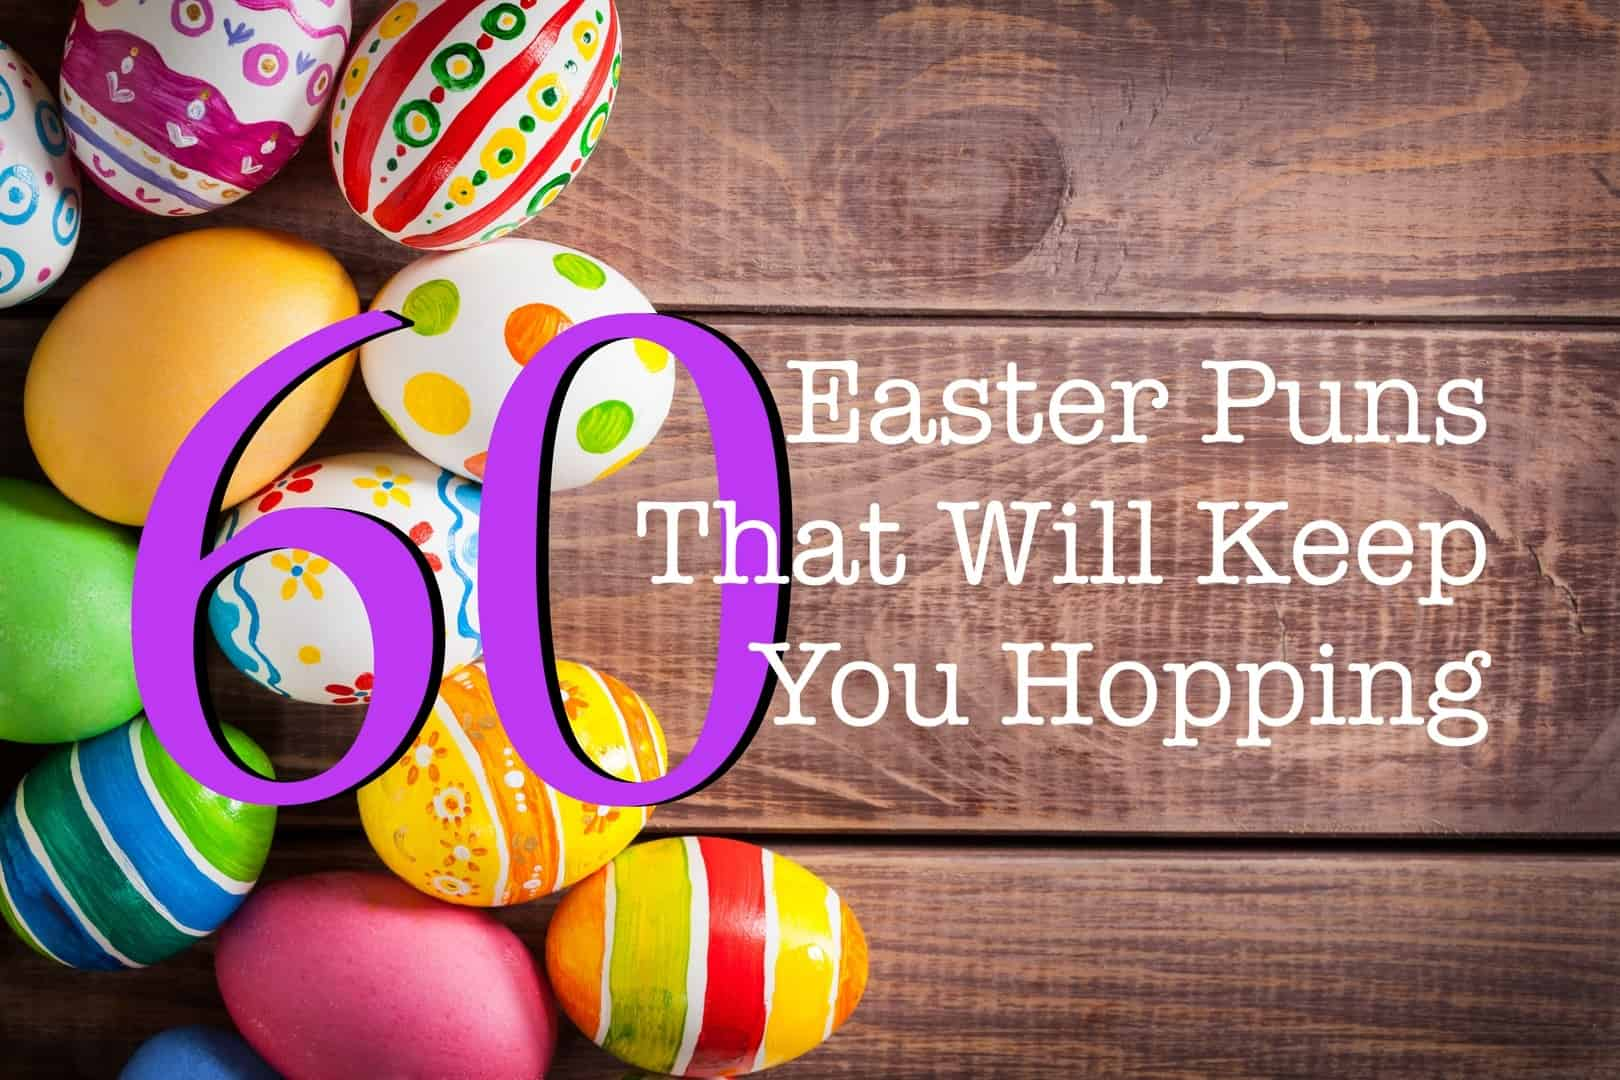 60 Easter Puns That Will Keep You Hopping